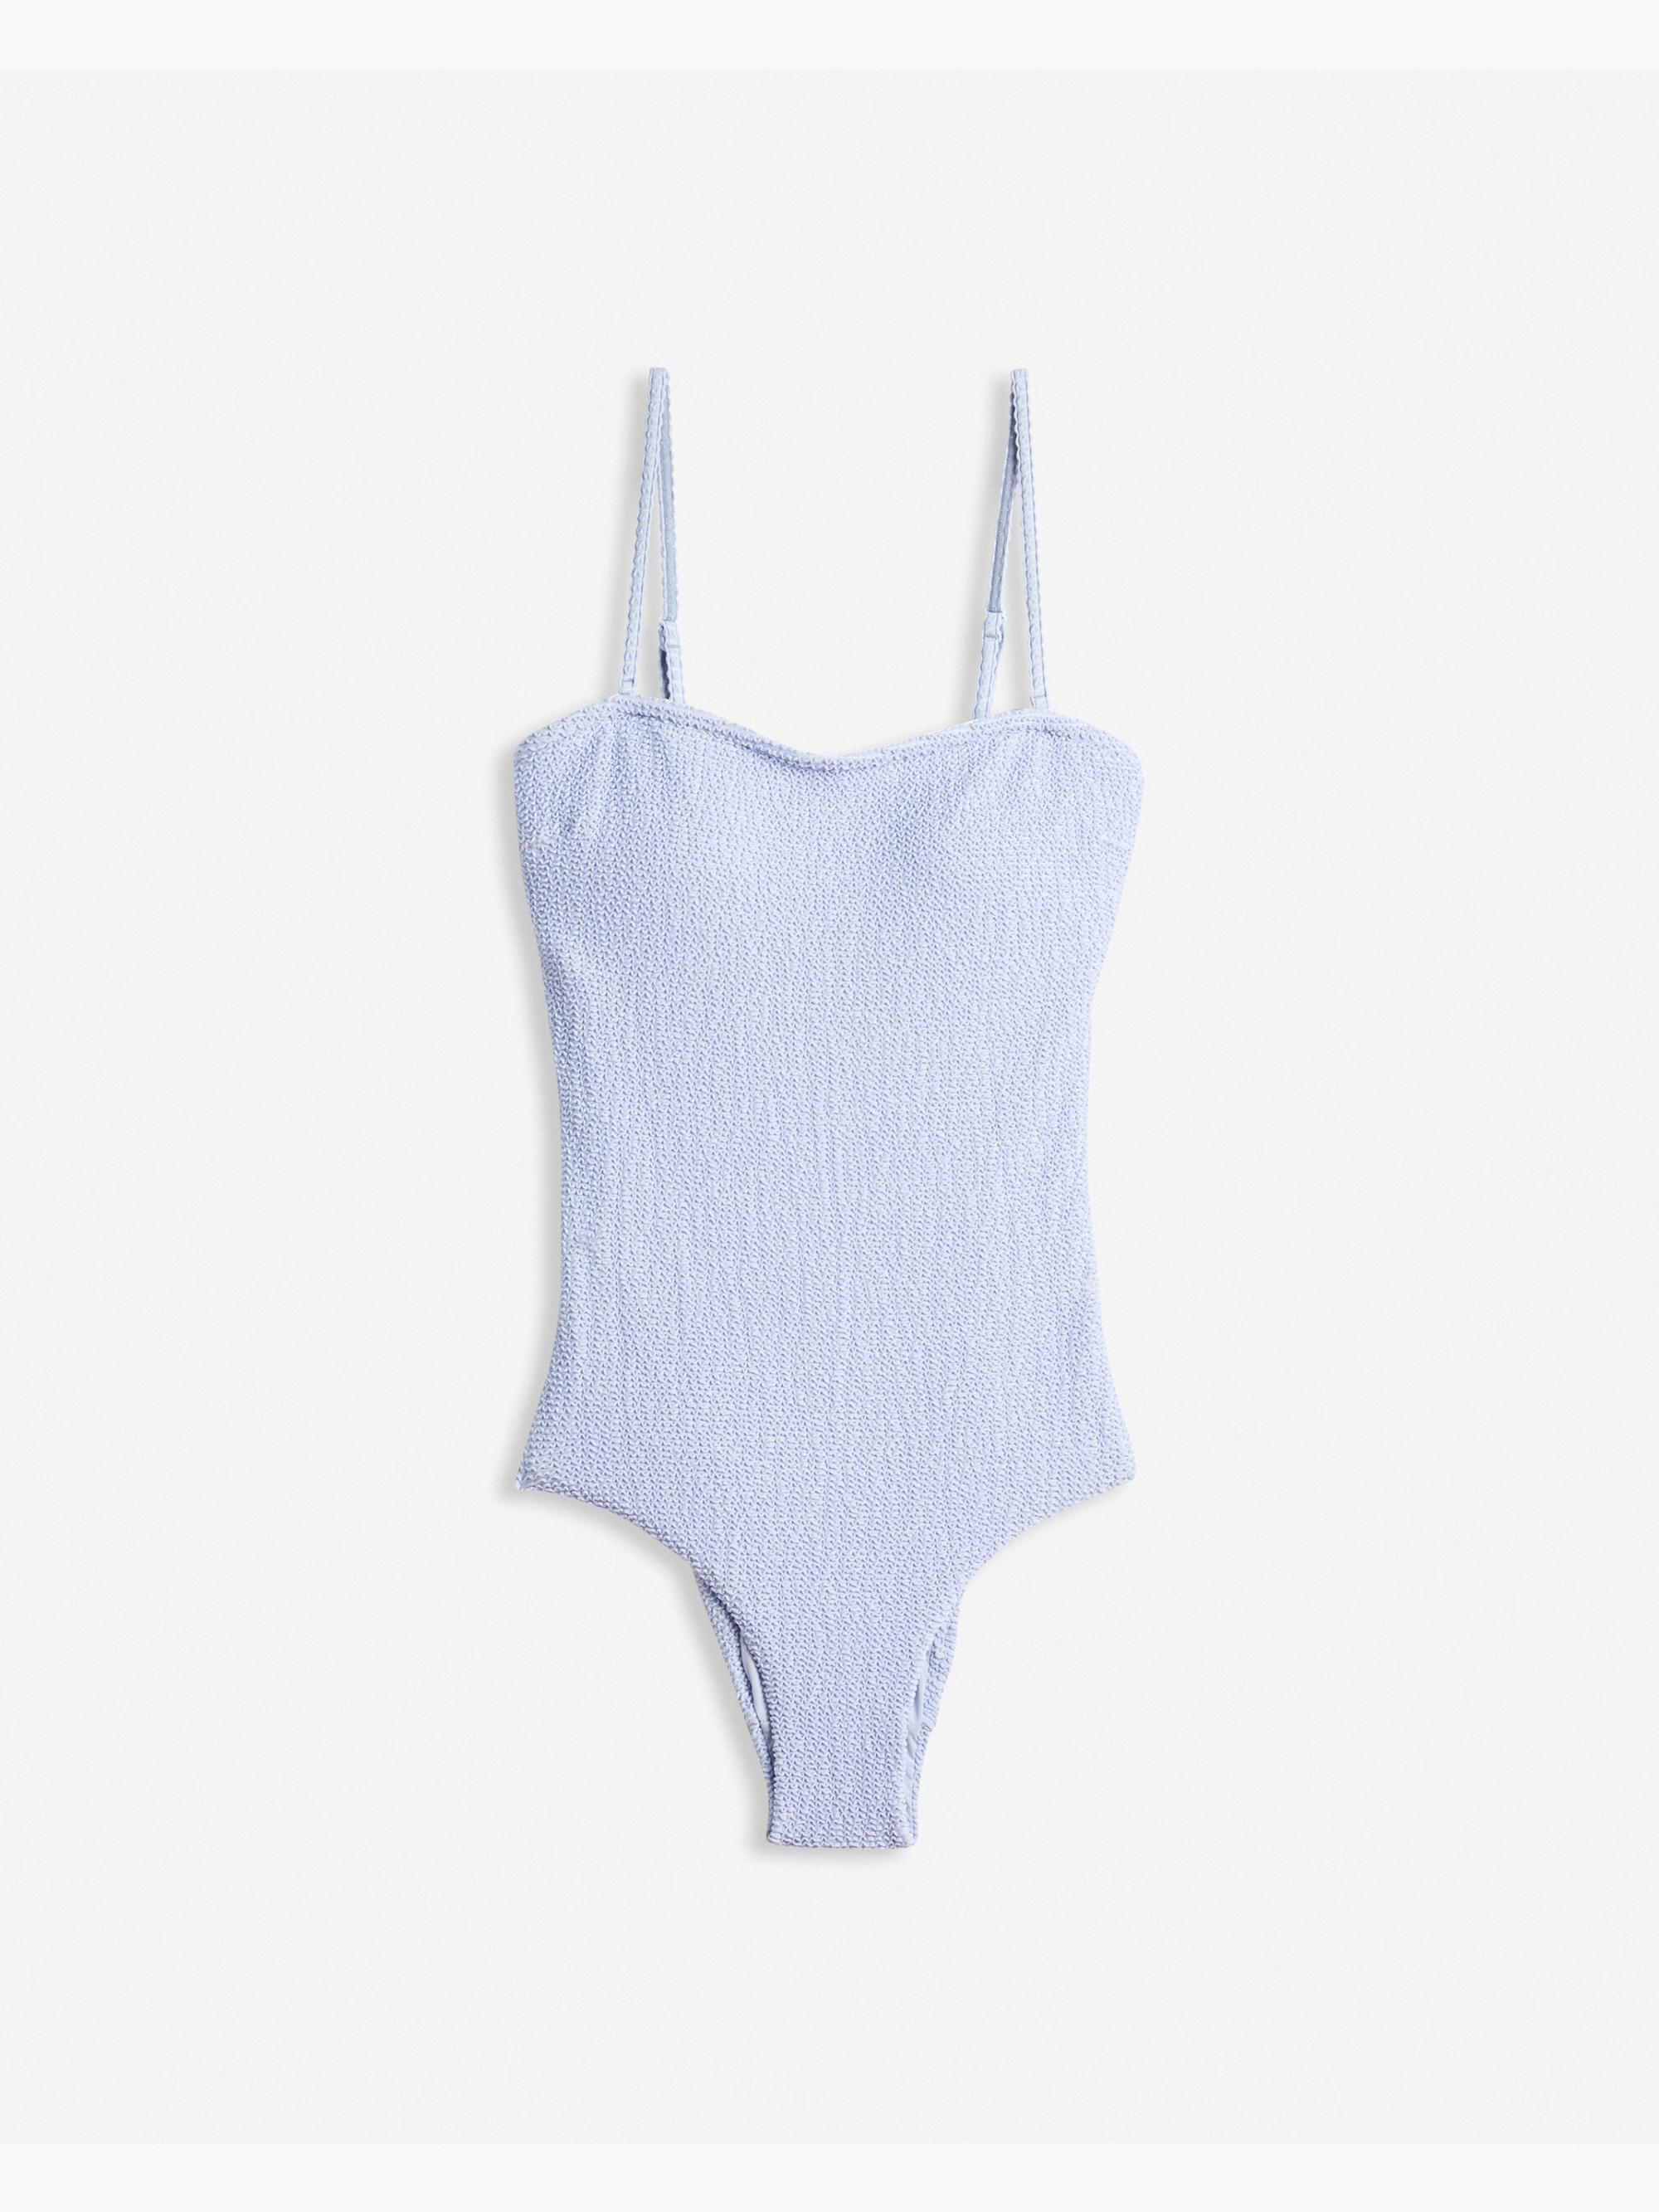 eb1e7368dd Onia Estelle Smocking One Piece Swimsuit in Blue - Lyst